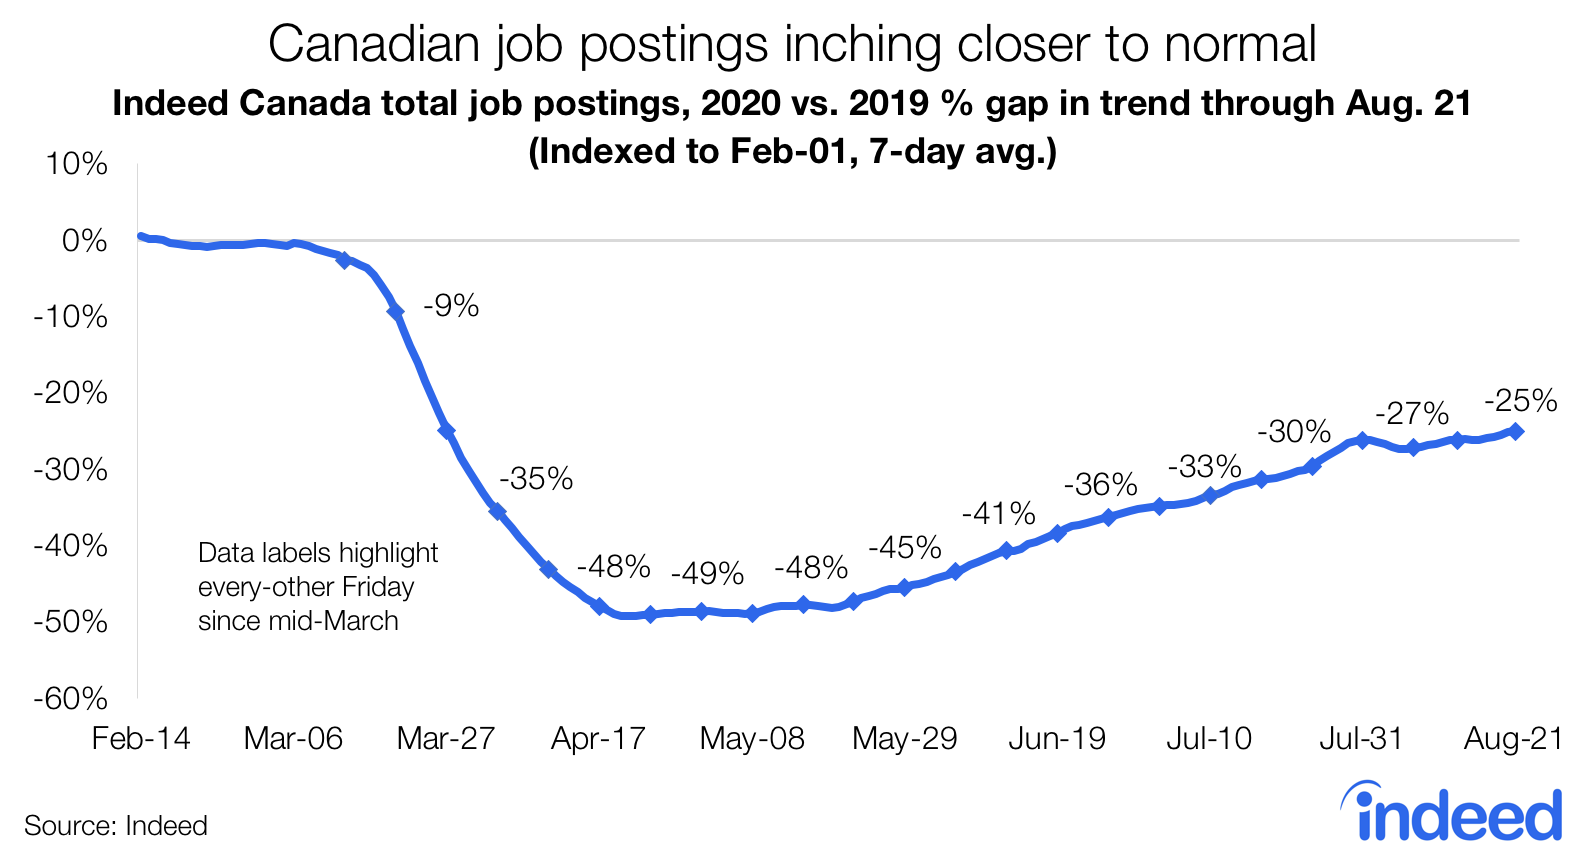 Canadian job postings inching closer to normal